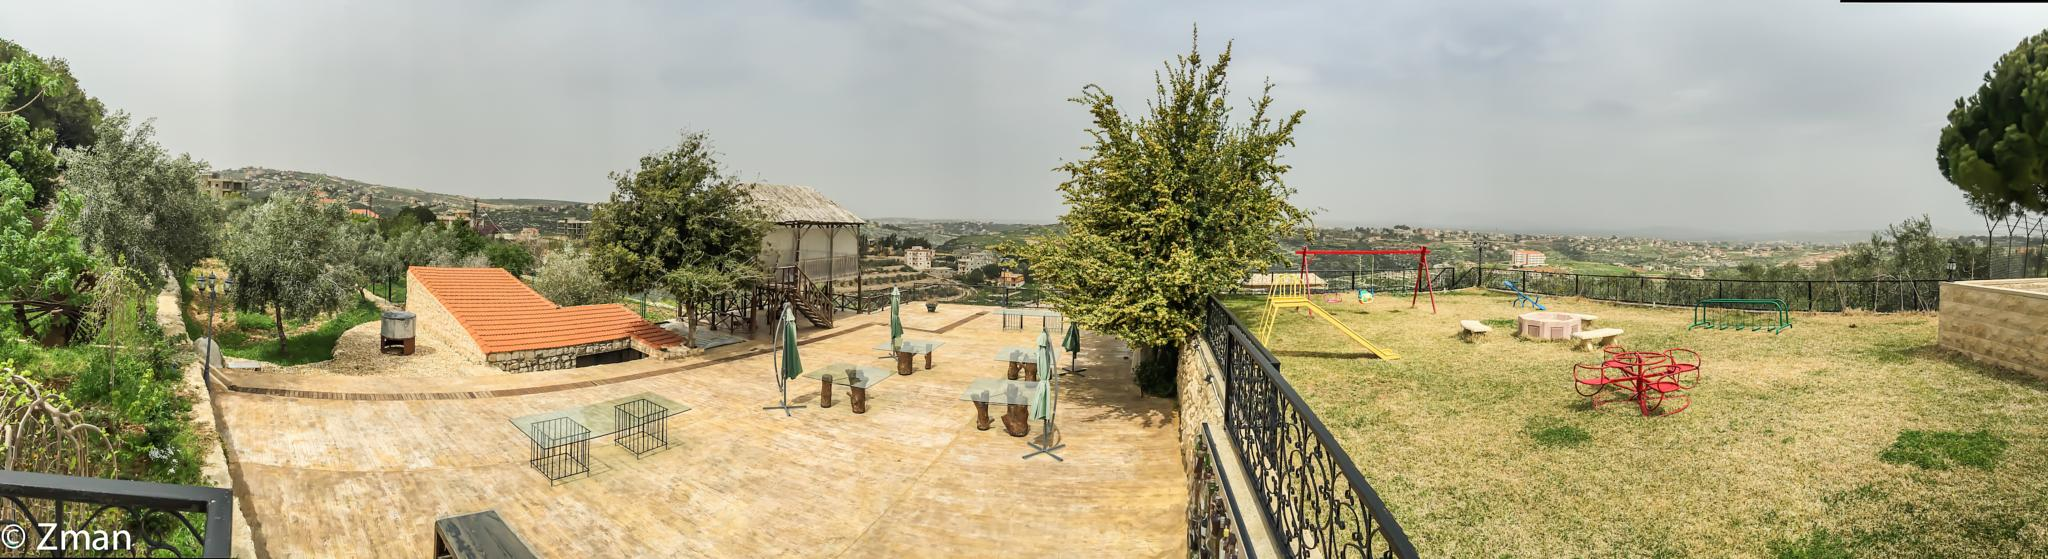 Our Recreation and Playground Areas by muhammad.nasser.963